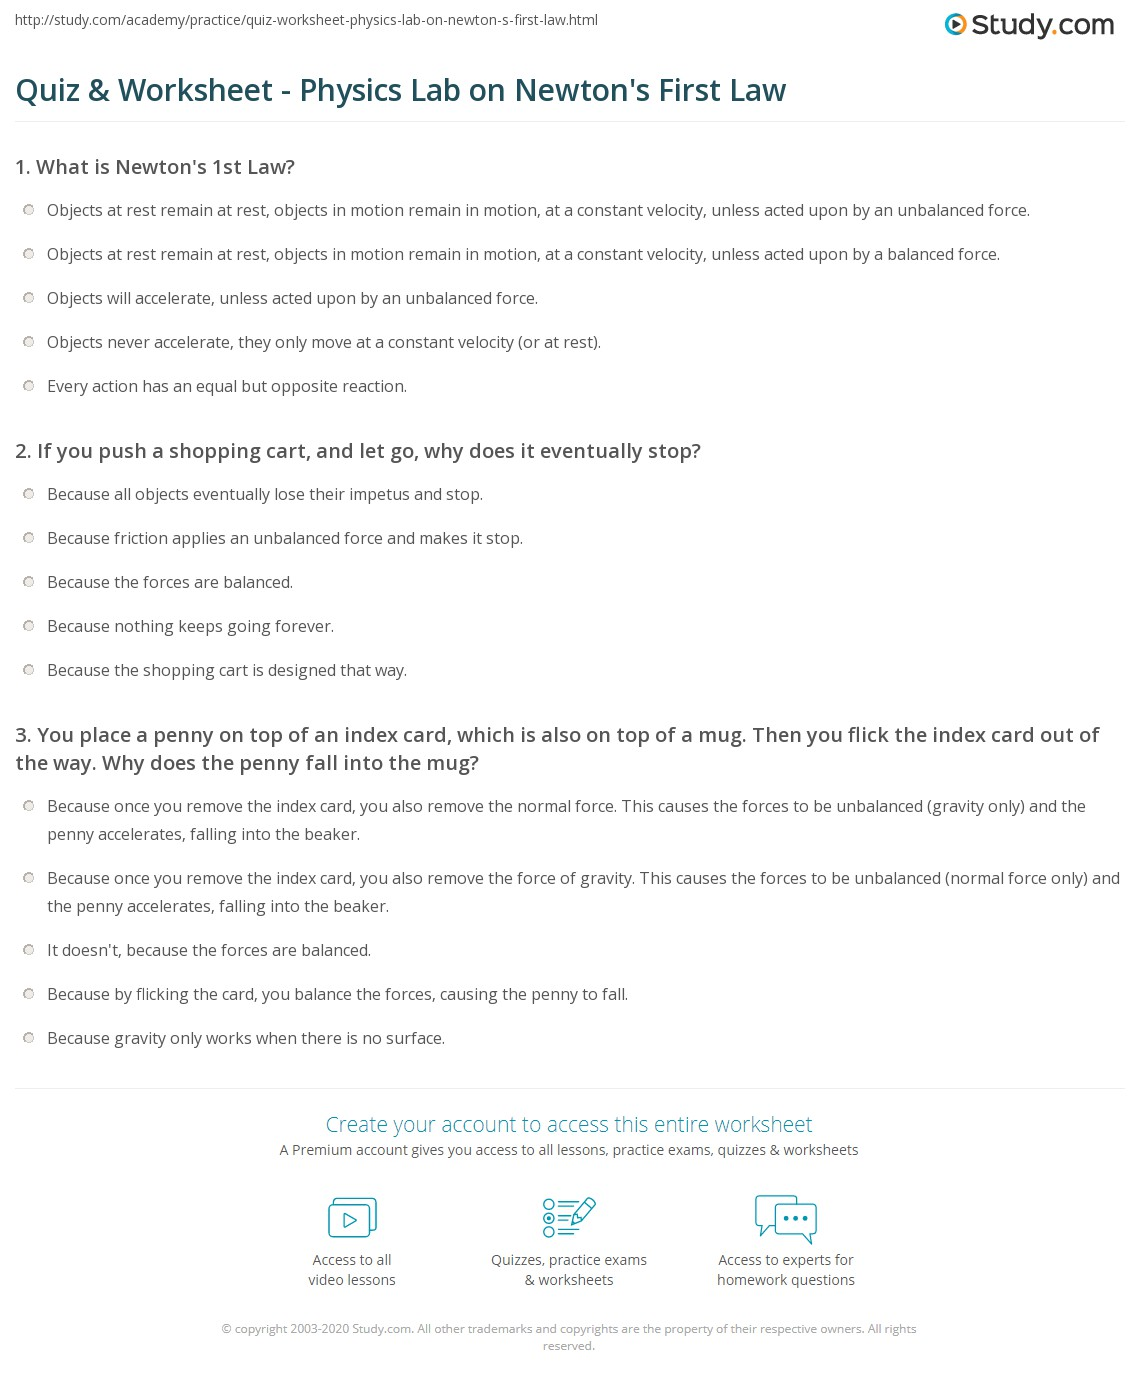 law quiz Testq is a career quiz resource for people looking to figure out the perfect career path, find jobs, and learn about careers through personality quizzes and tests.